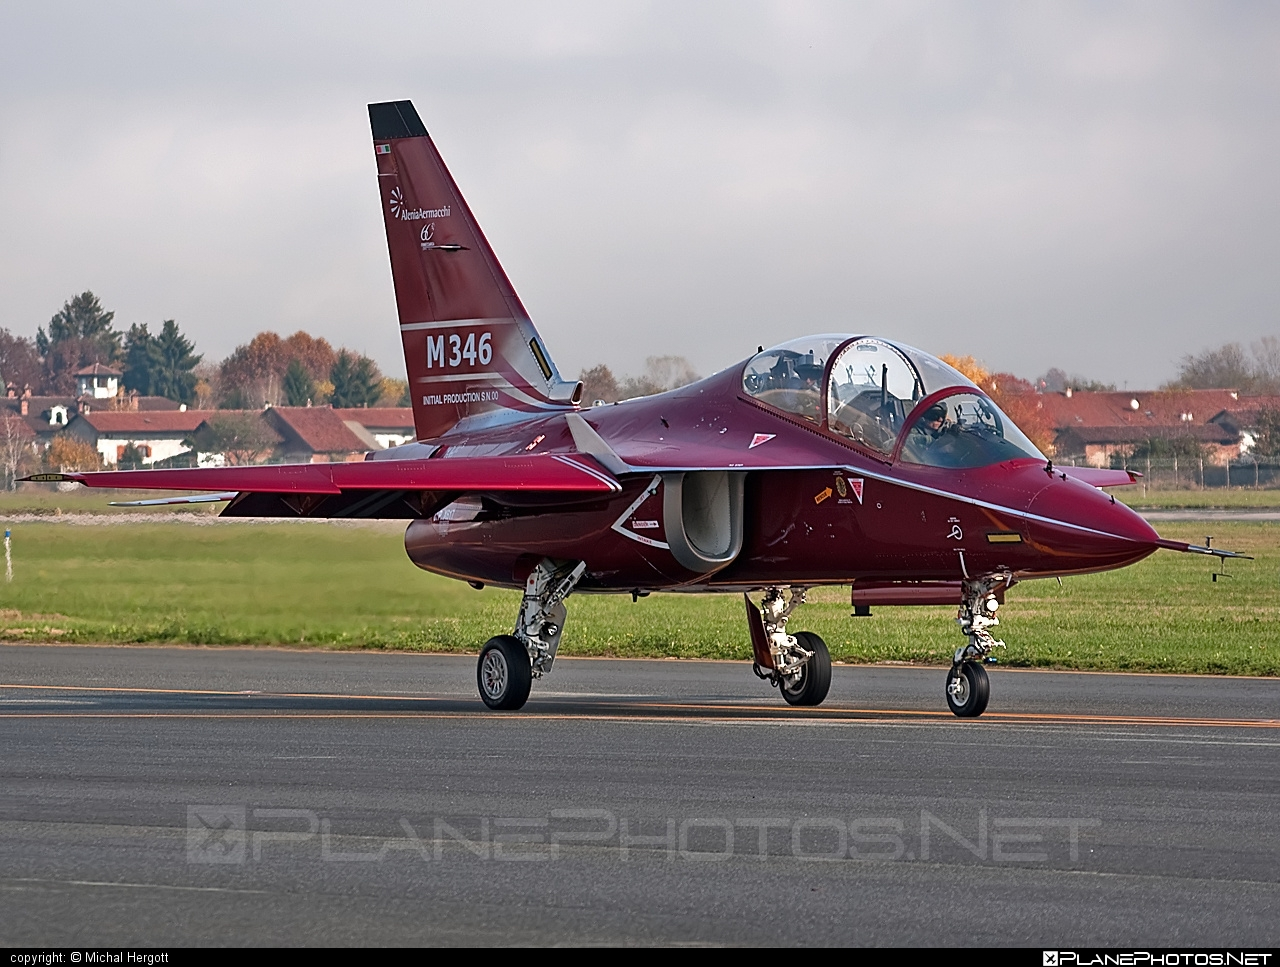 Aermacchi M-346 - CPX617 operated by Aermacchi #aermacchi #aermacchi346 #aermacchim346 #m346